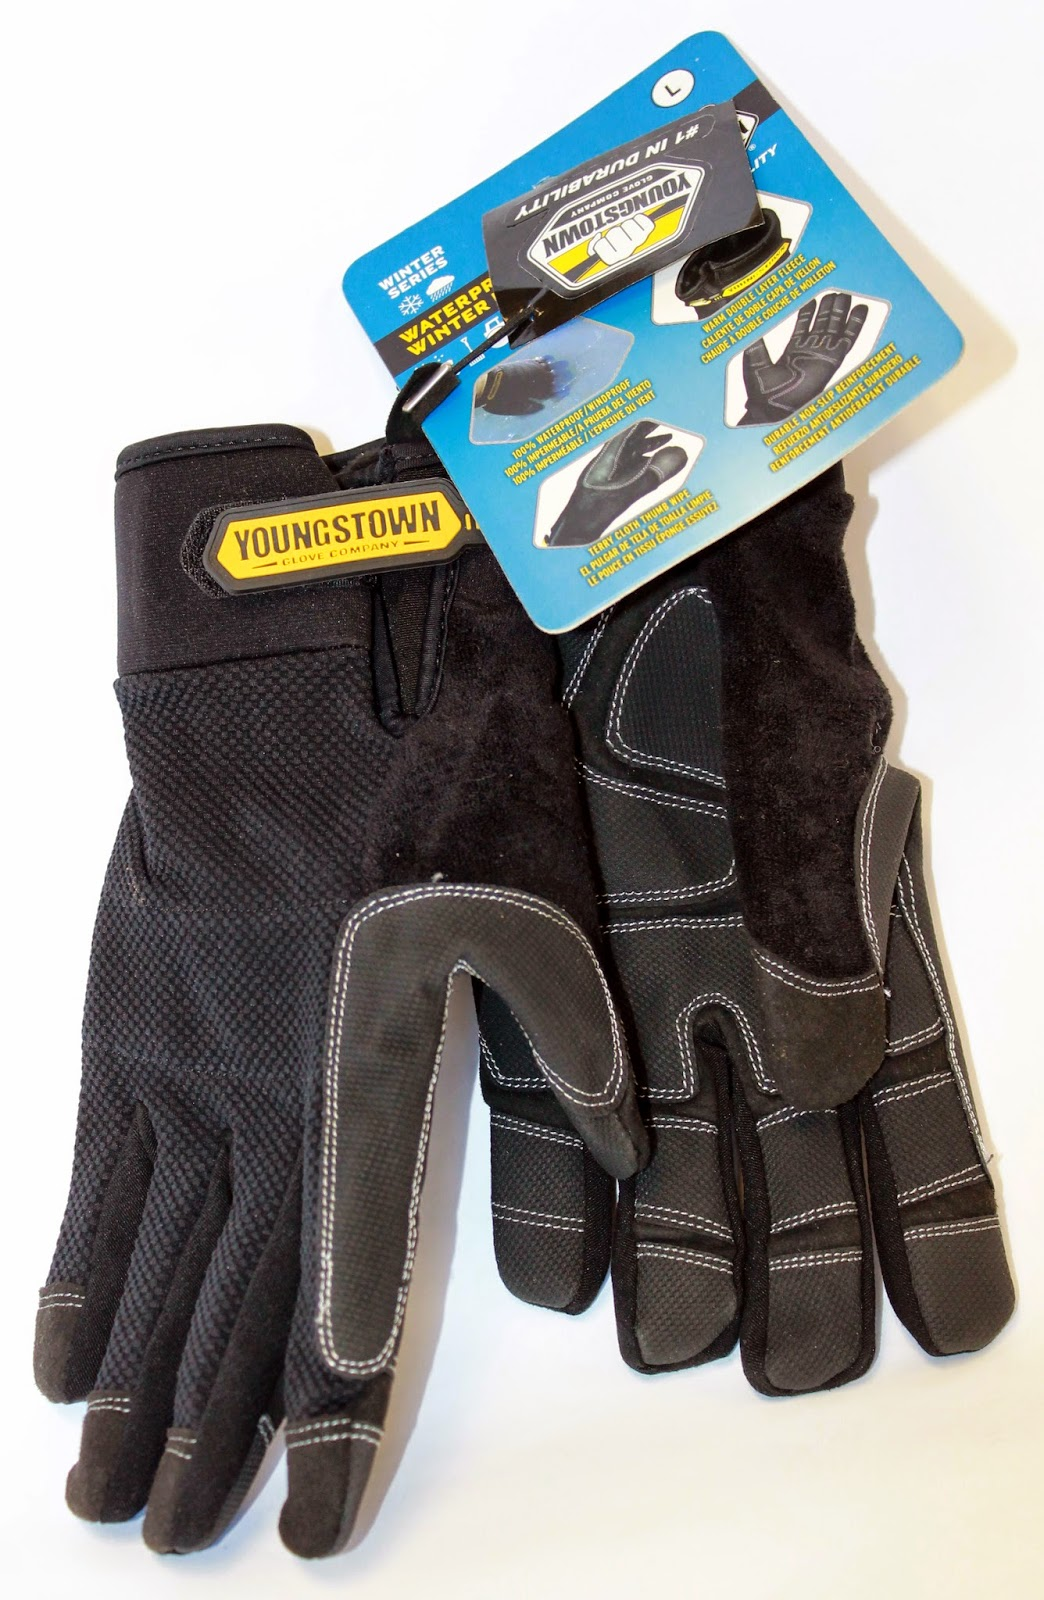 Responsible 1 Pair Skiing Gloves Kids Children Outdoor Winter Snow Professional Mitten Waterproof Windproof Warm Thick Fleece Full Fingers Providing Amenities For The People; Making Life Easier For The Population Gloves & Mittens